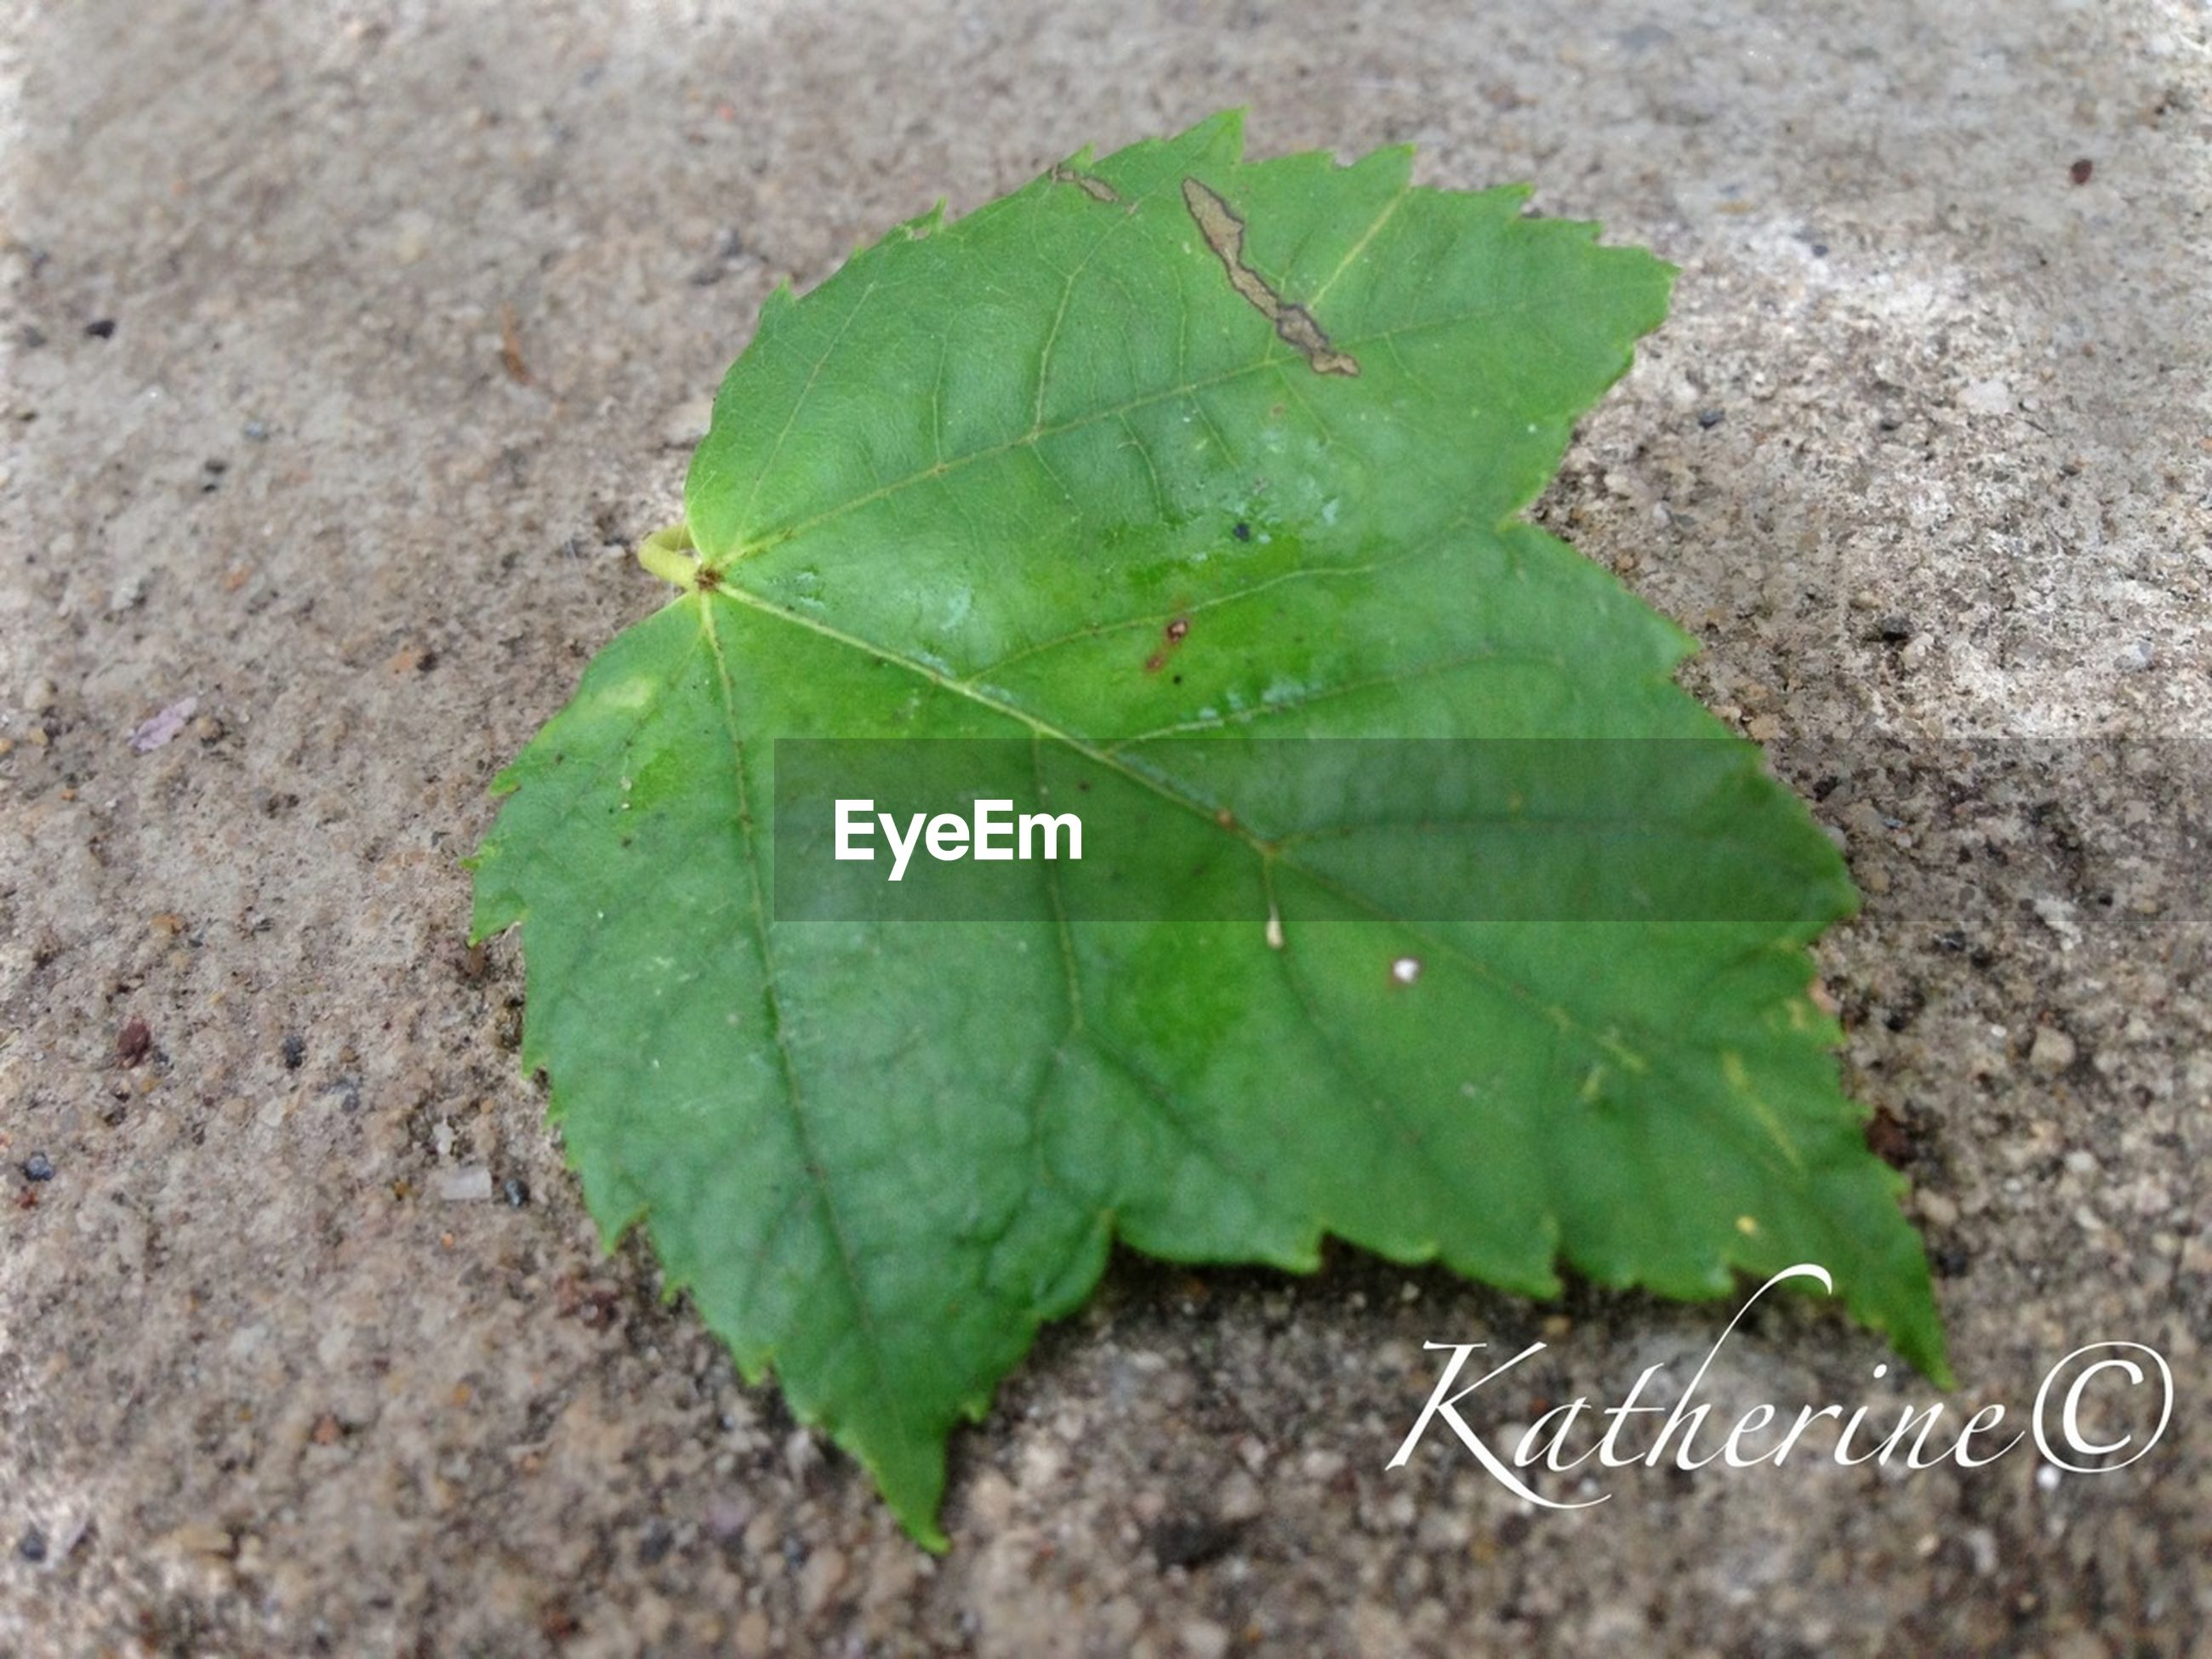 leaf, green color, leaf vein, close-up, high angle view, insect, nature, plant, green, ground, no people, day, selective focus, outdoors, natural pattern, growth, leaves, fragility, textured, one animal